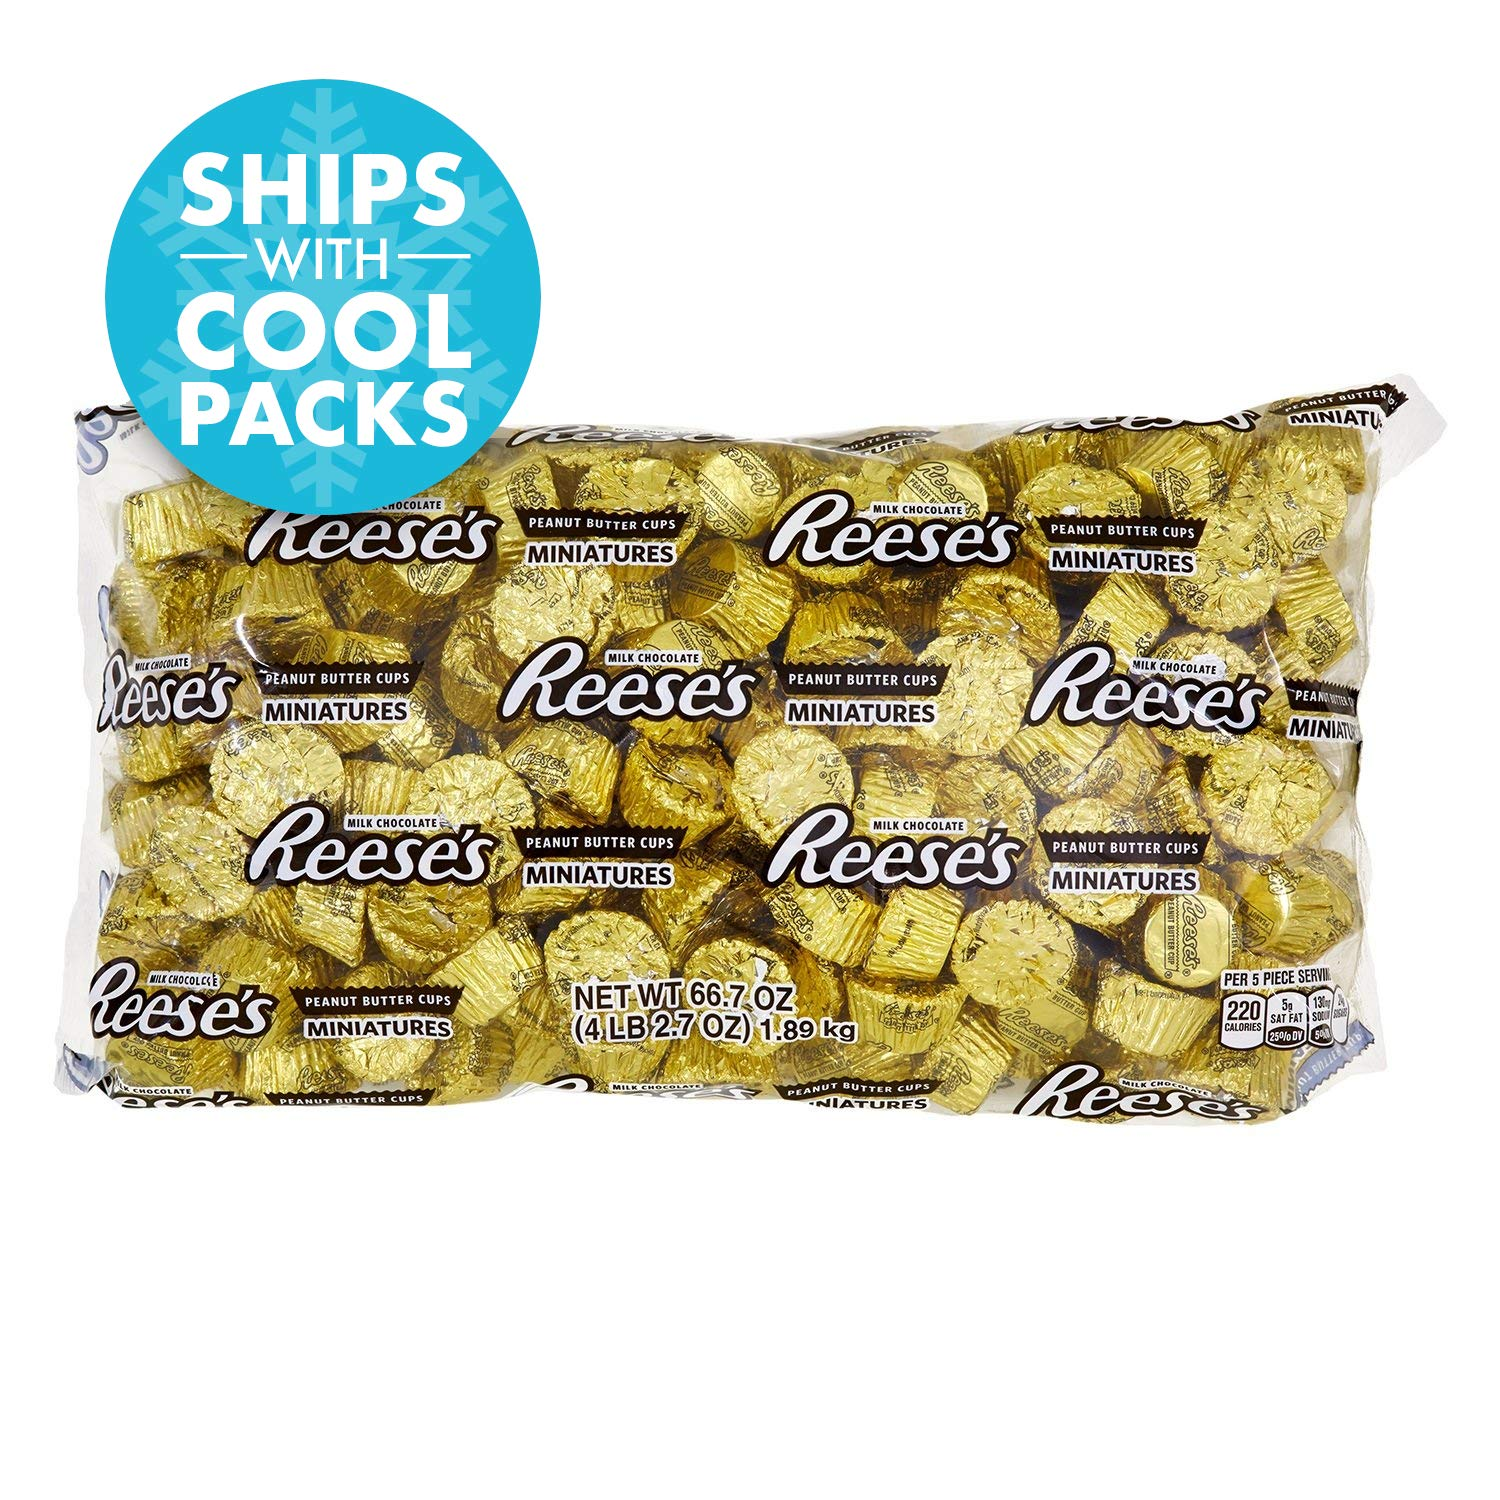 REESE'S Peanut Butter Cup Miniatures, Gold Chocolate Candy, 66.7 Ounce Bulk Bag (About 205 Pieces)